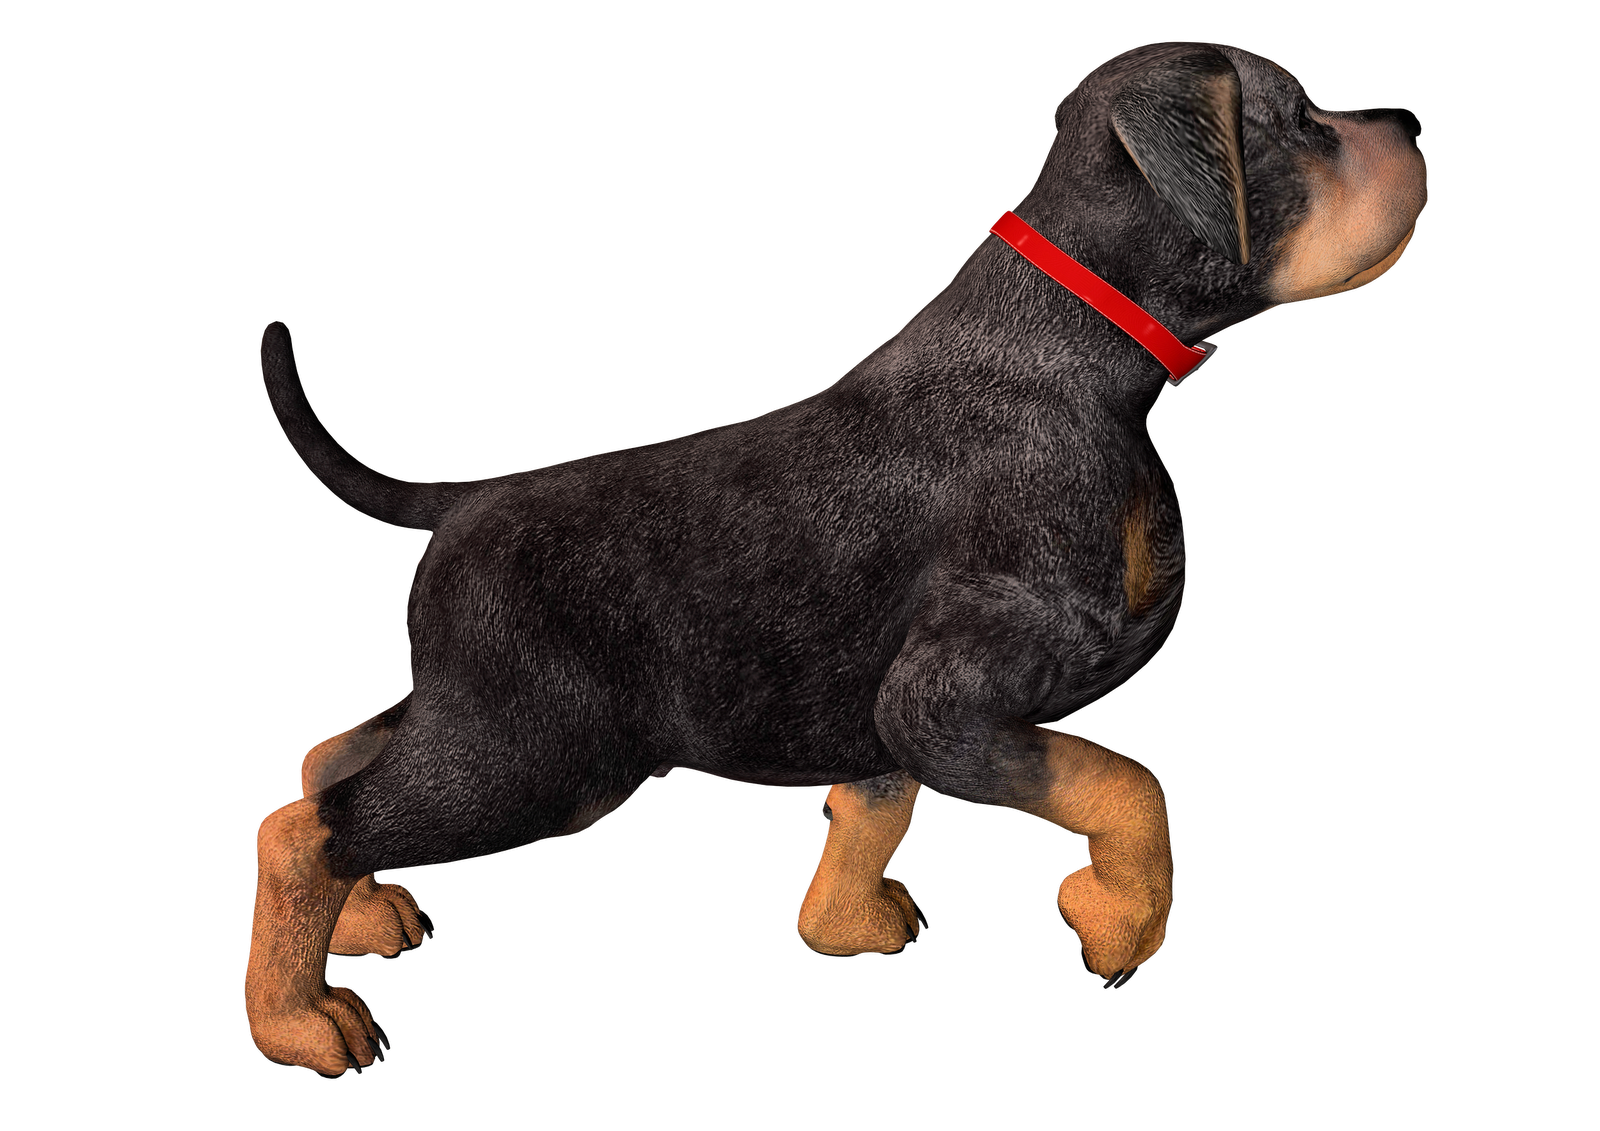 image freeuse stock Png hd transparent images. Walking the dog clipart